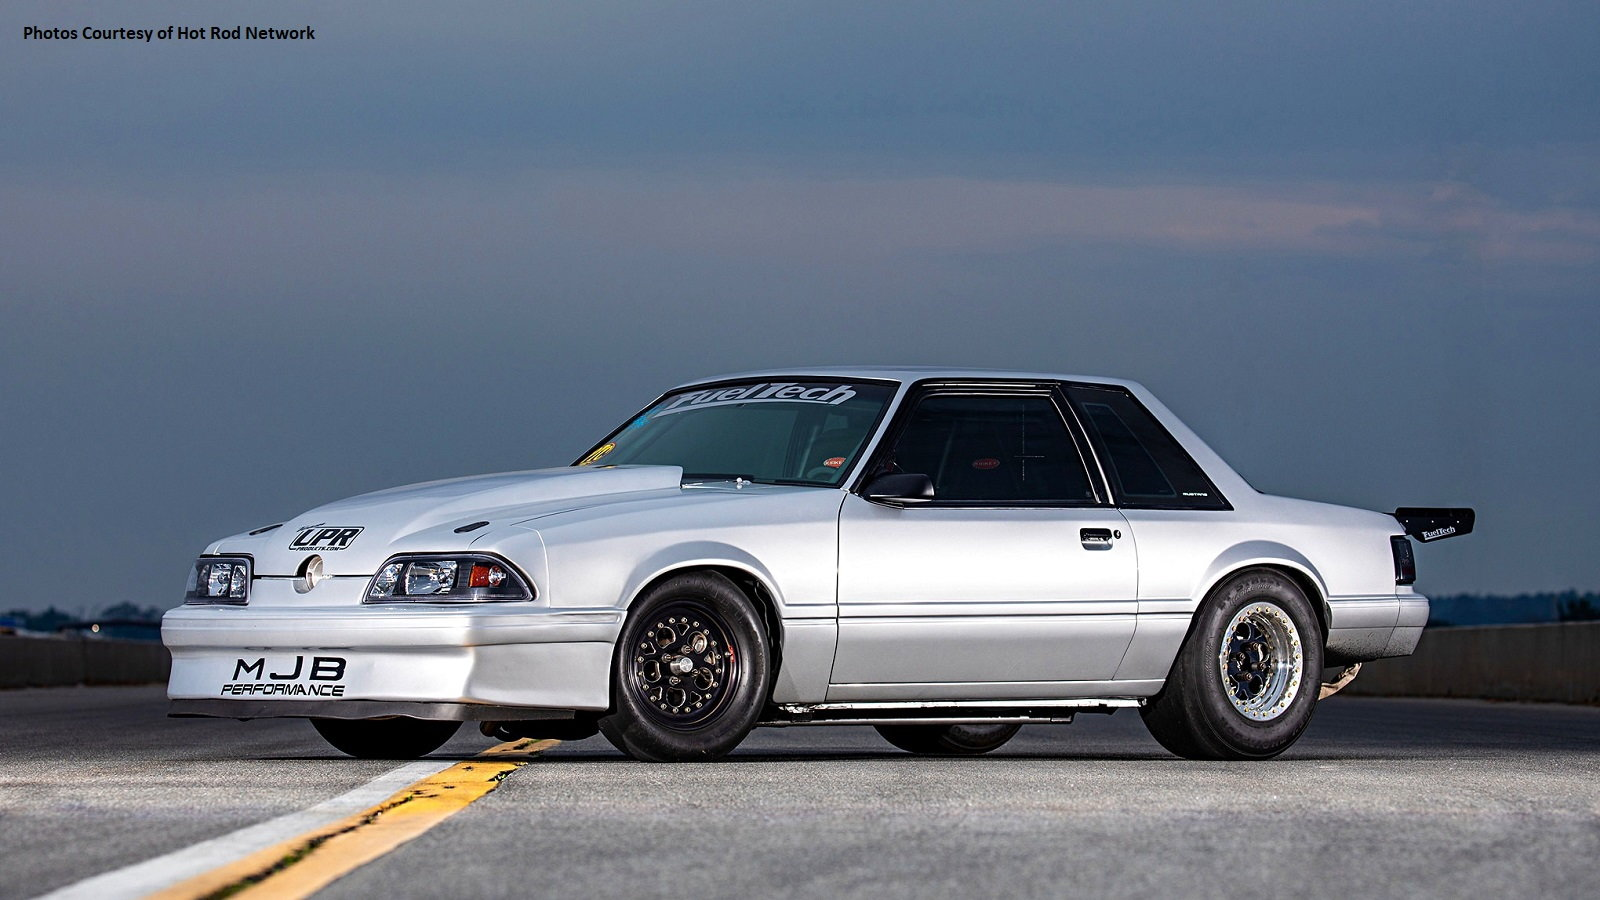 Lethal 1993 Turbo LS1 Mustang LX